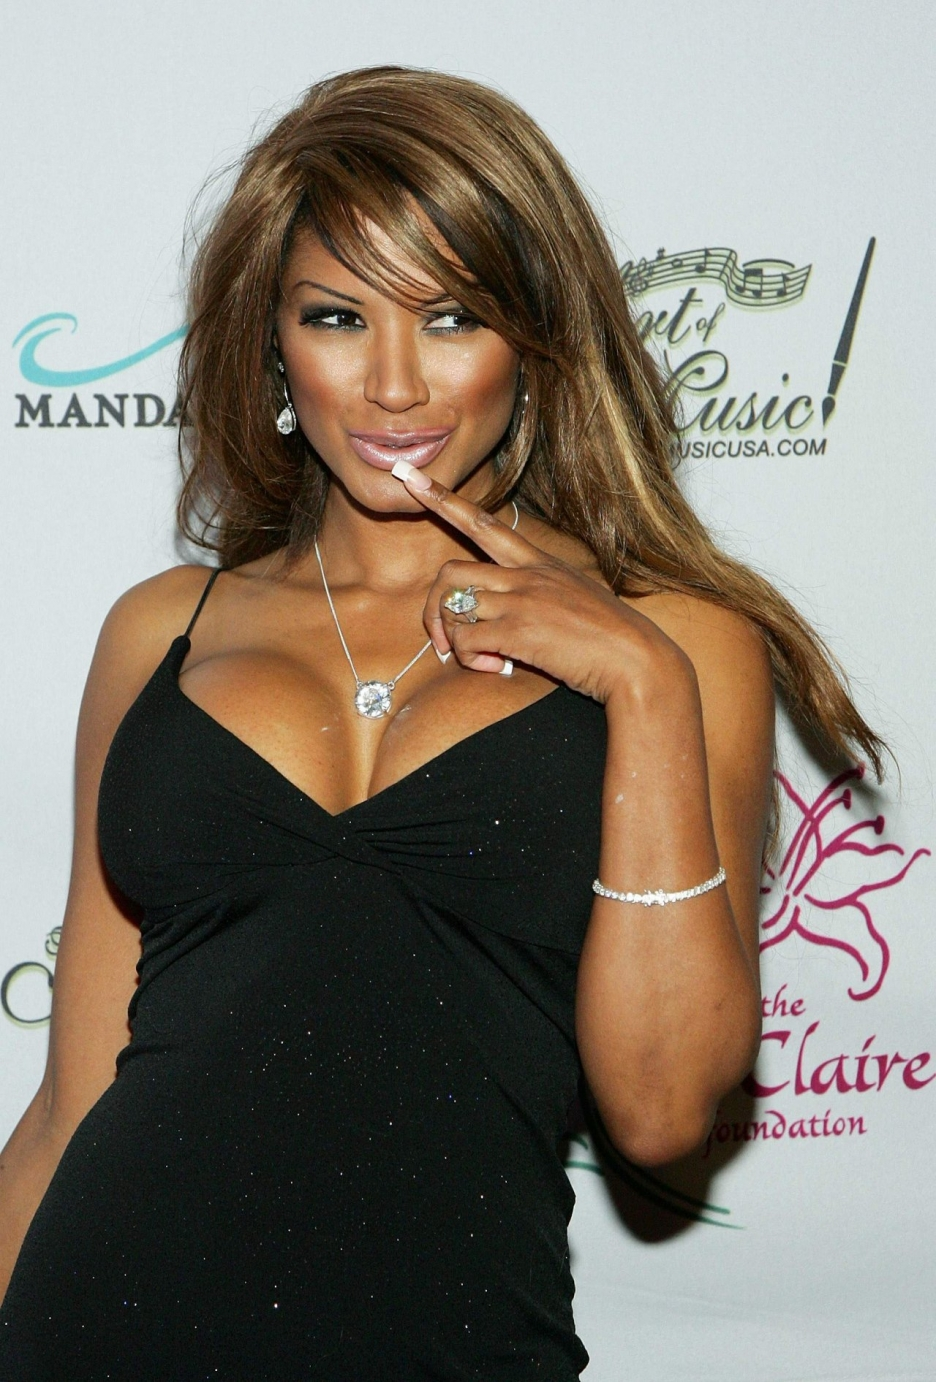 Traci Bingham earned a  million dollar salary - leaving the net worth at 0.5 million in 2018